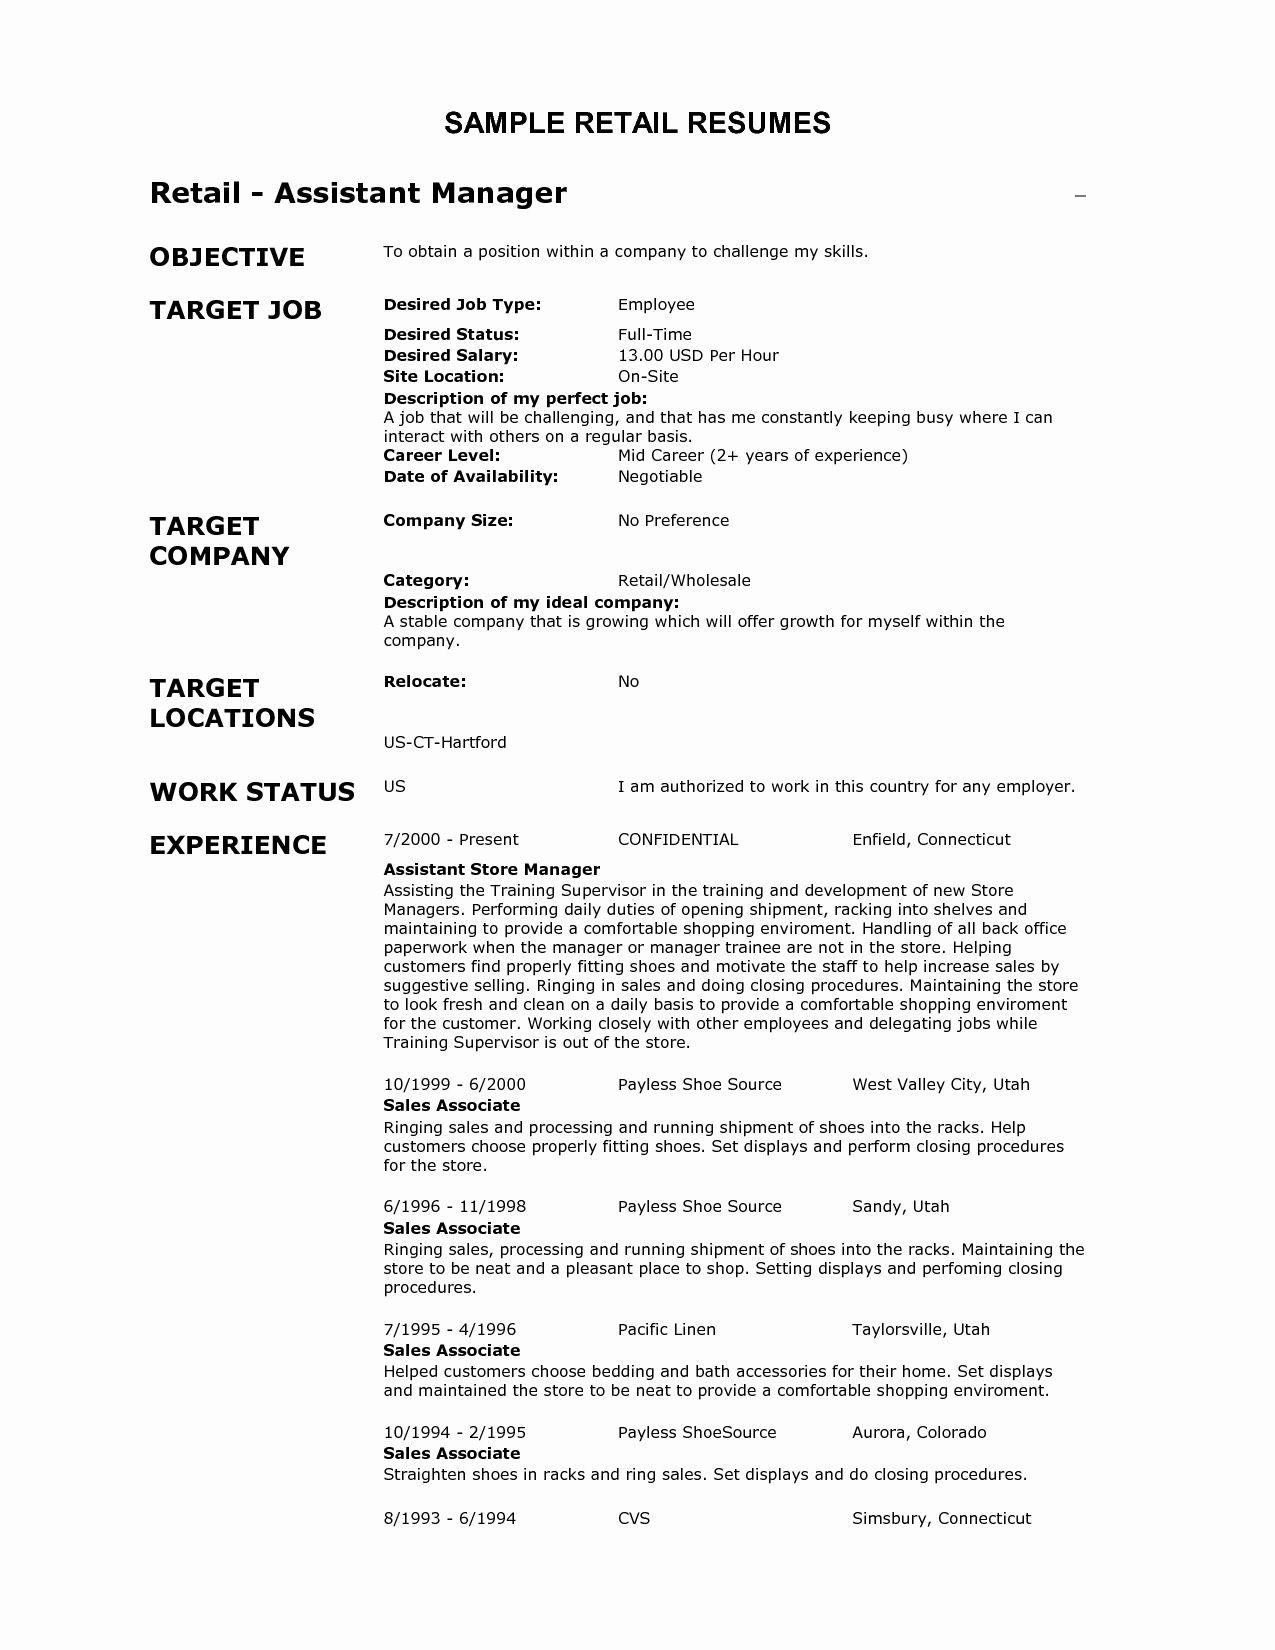 Availability Date In Resume - Performance professional | Sport ...